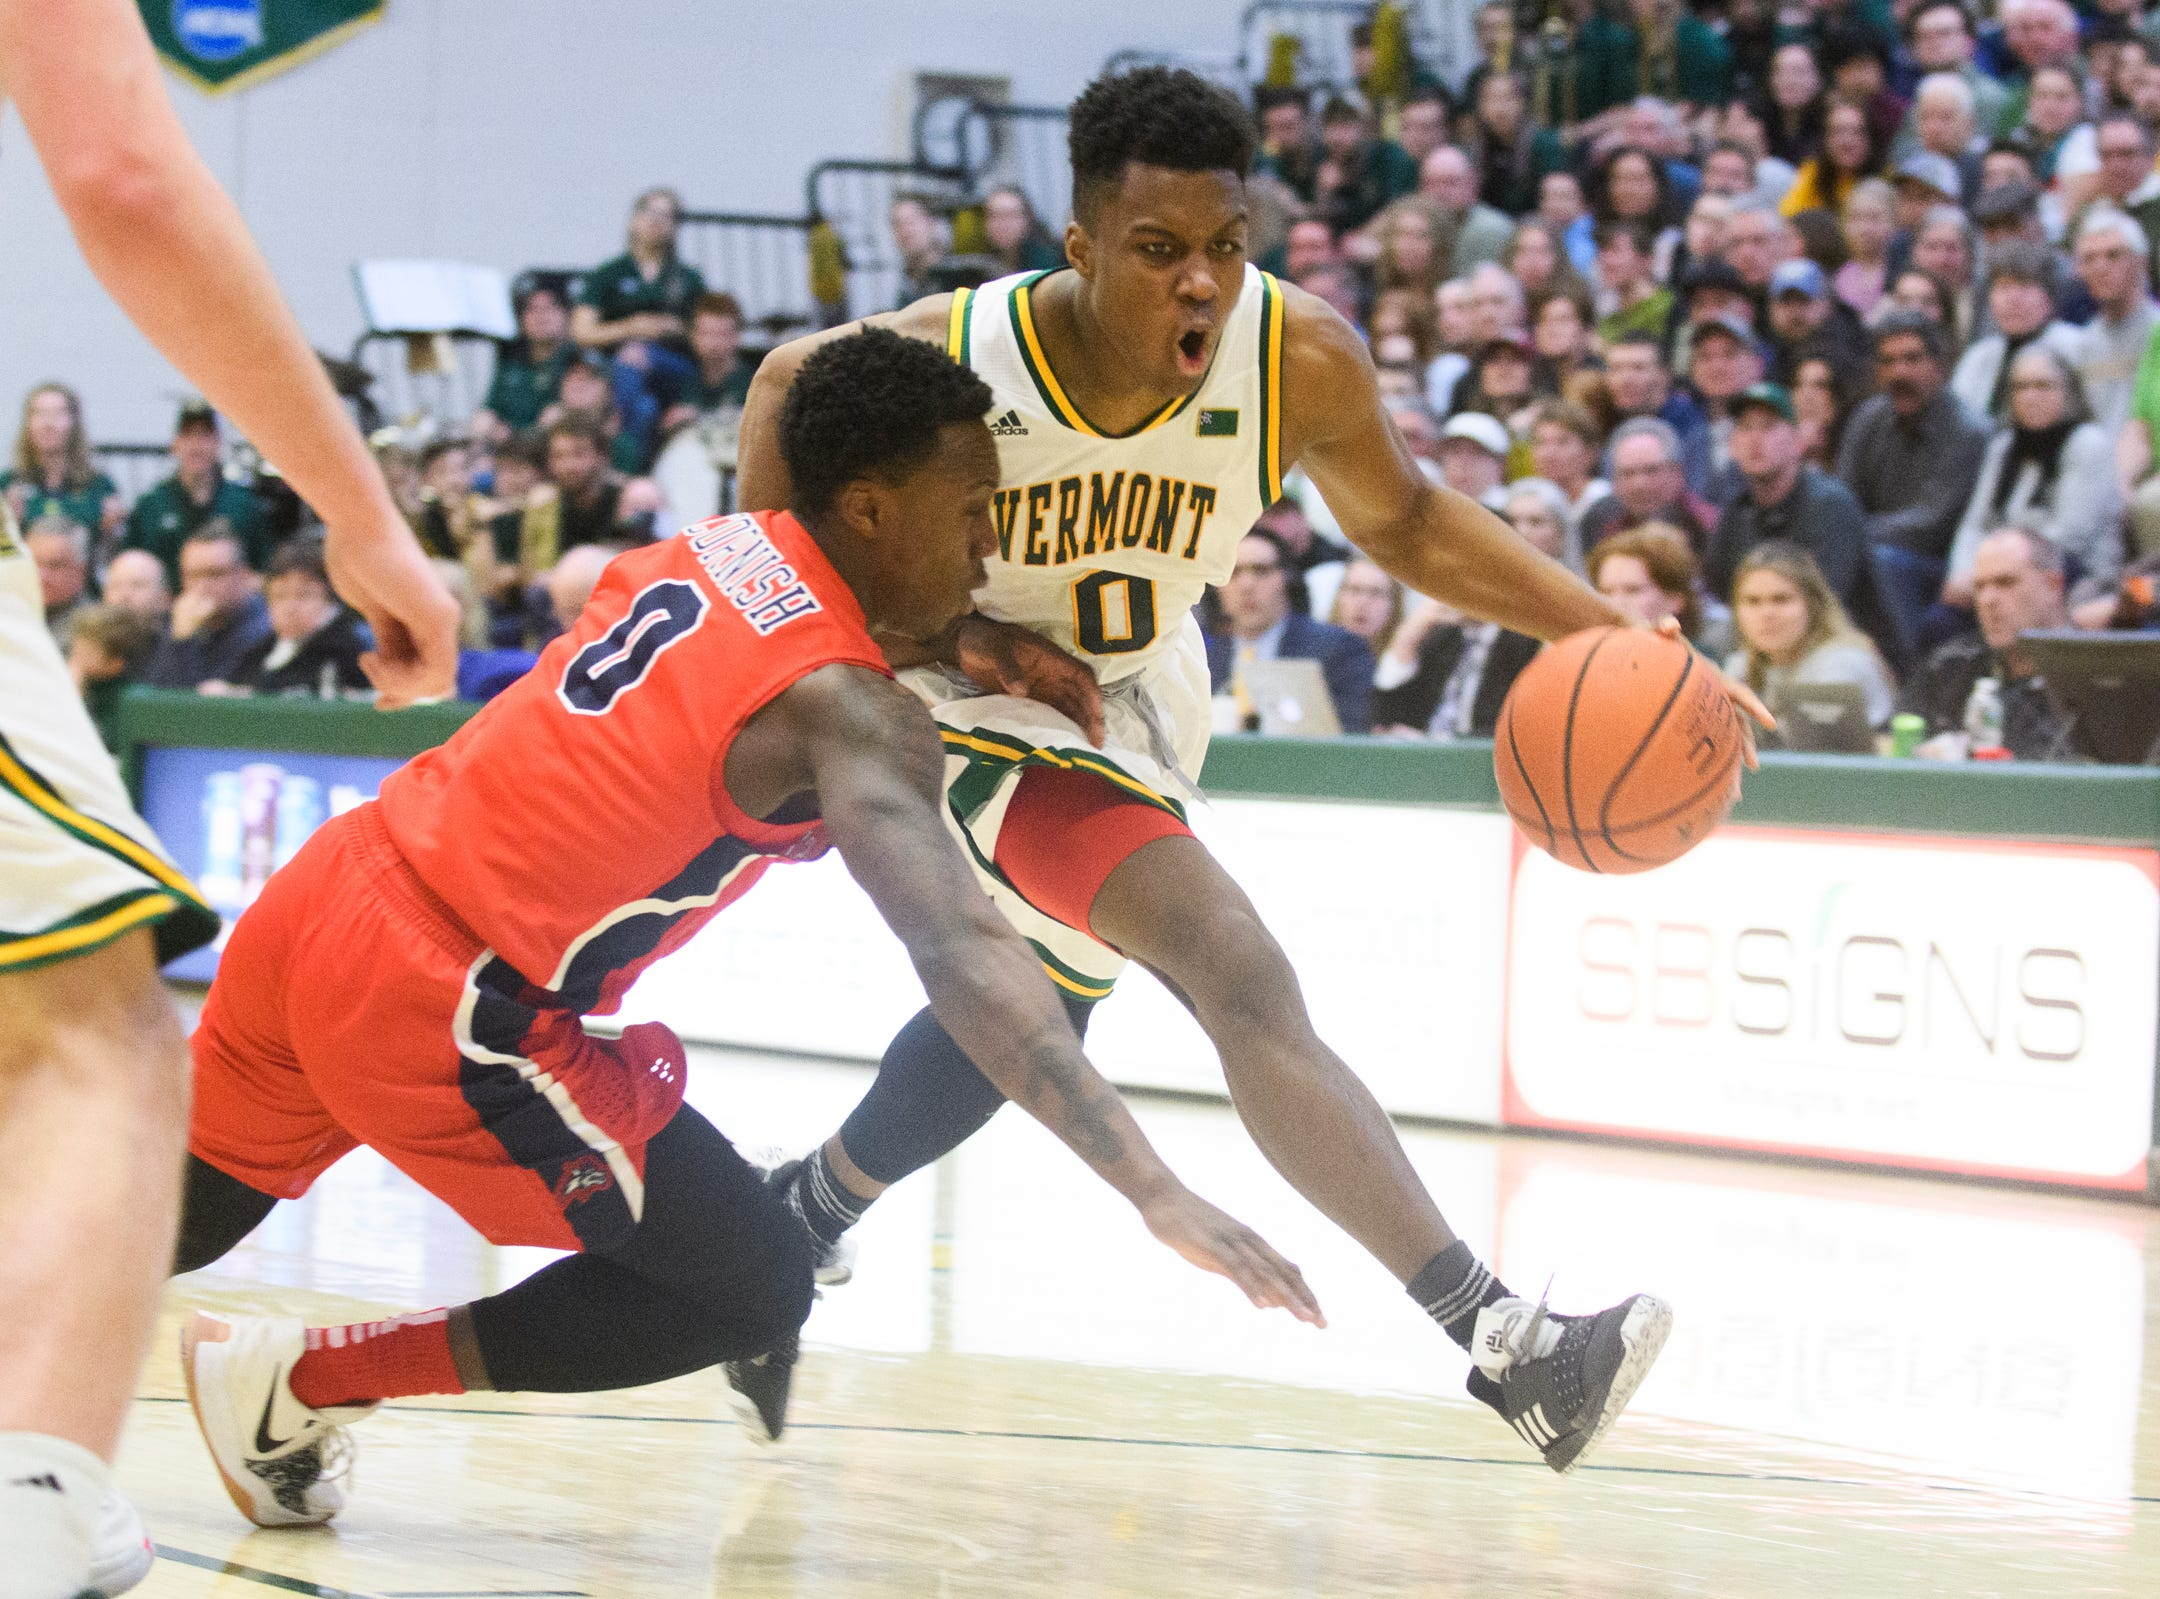 Vermont guard Stef Smith (0) drives to the hoop past Stony Brook's Jaron Cornish (0) during the men's basketball game between the Stony Brook Seawolves and the Vermont Catamounts at Patrick Gym on Saturday night March 2, 2019 in Burlington, Vermont.